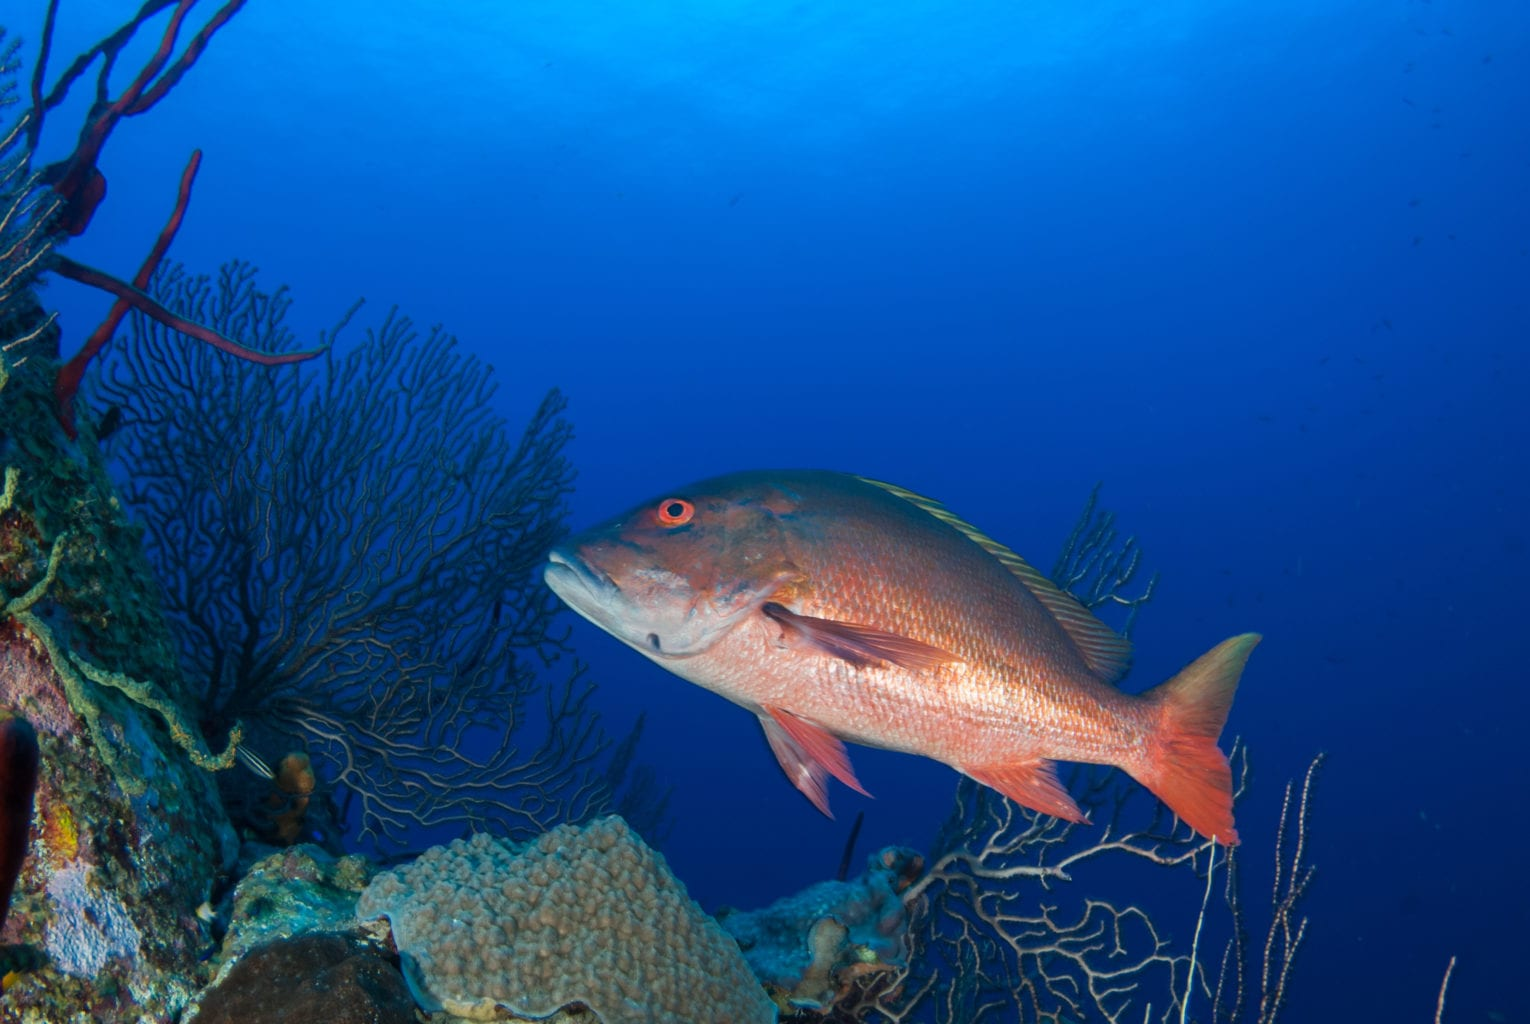 A mutton snapper cruises through the deep tropical blue caribbean sea in grand cayman. The pristine reef is home to many species and provides an ecosystem for fish and other animals.